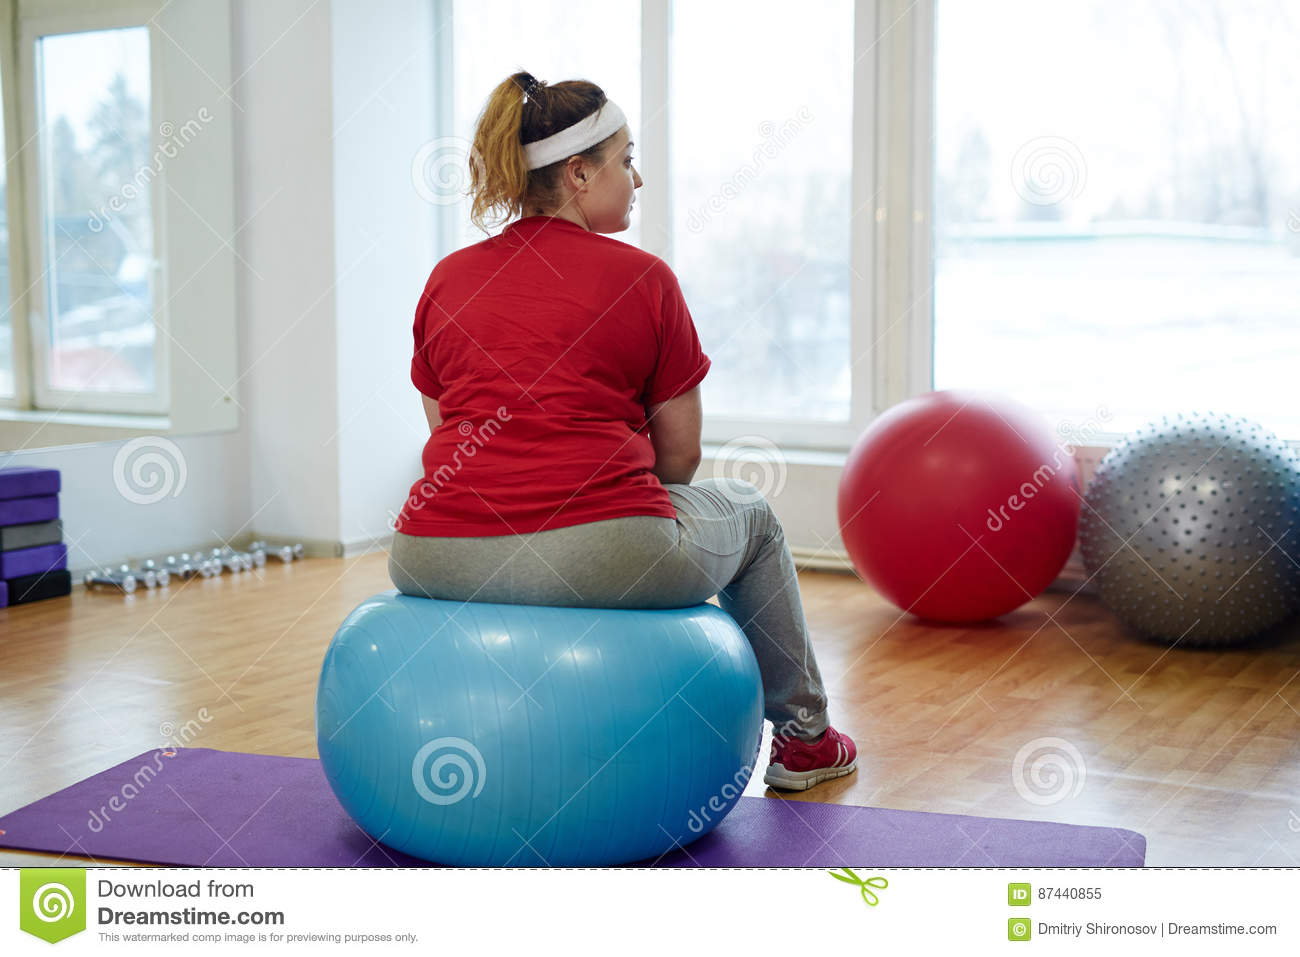 Back View Portrait of Obese Woman on Fitness ball